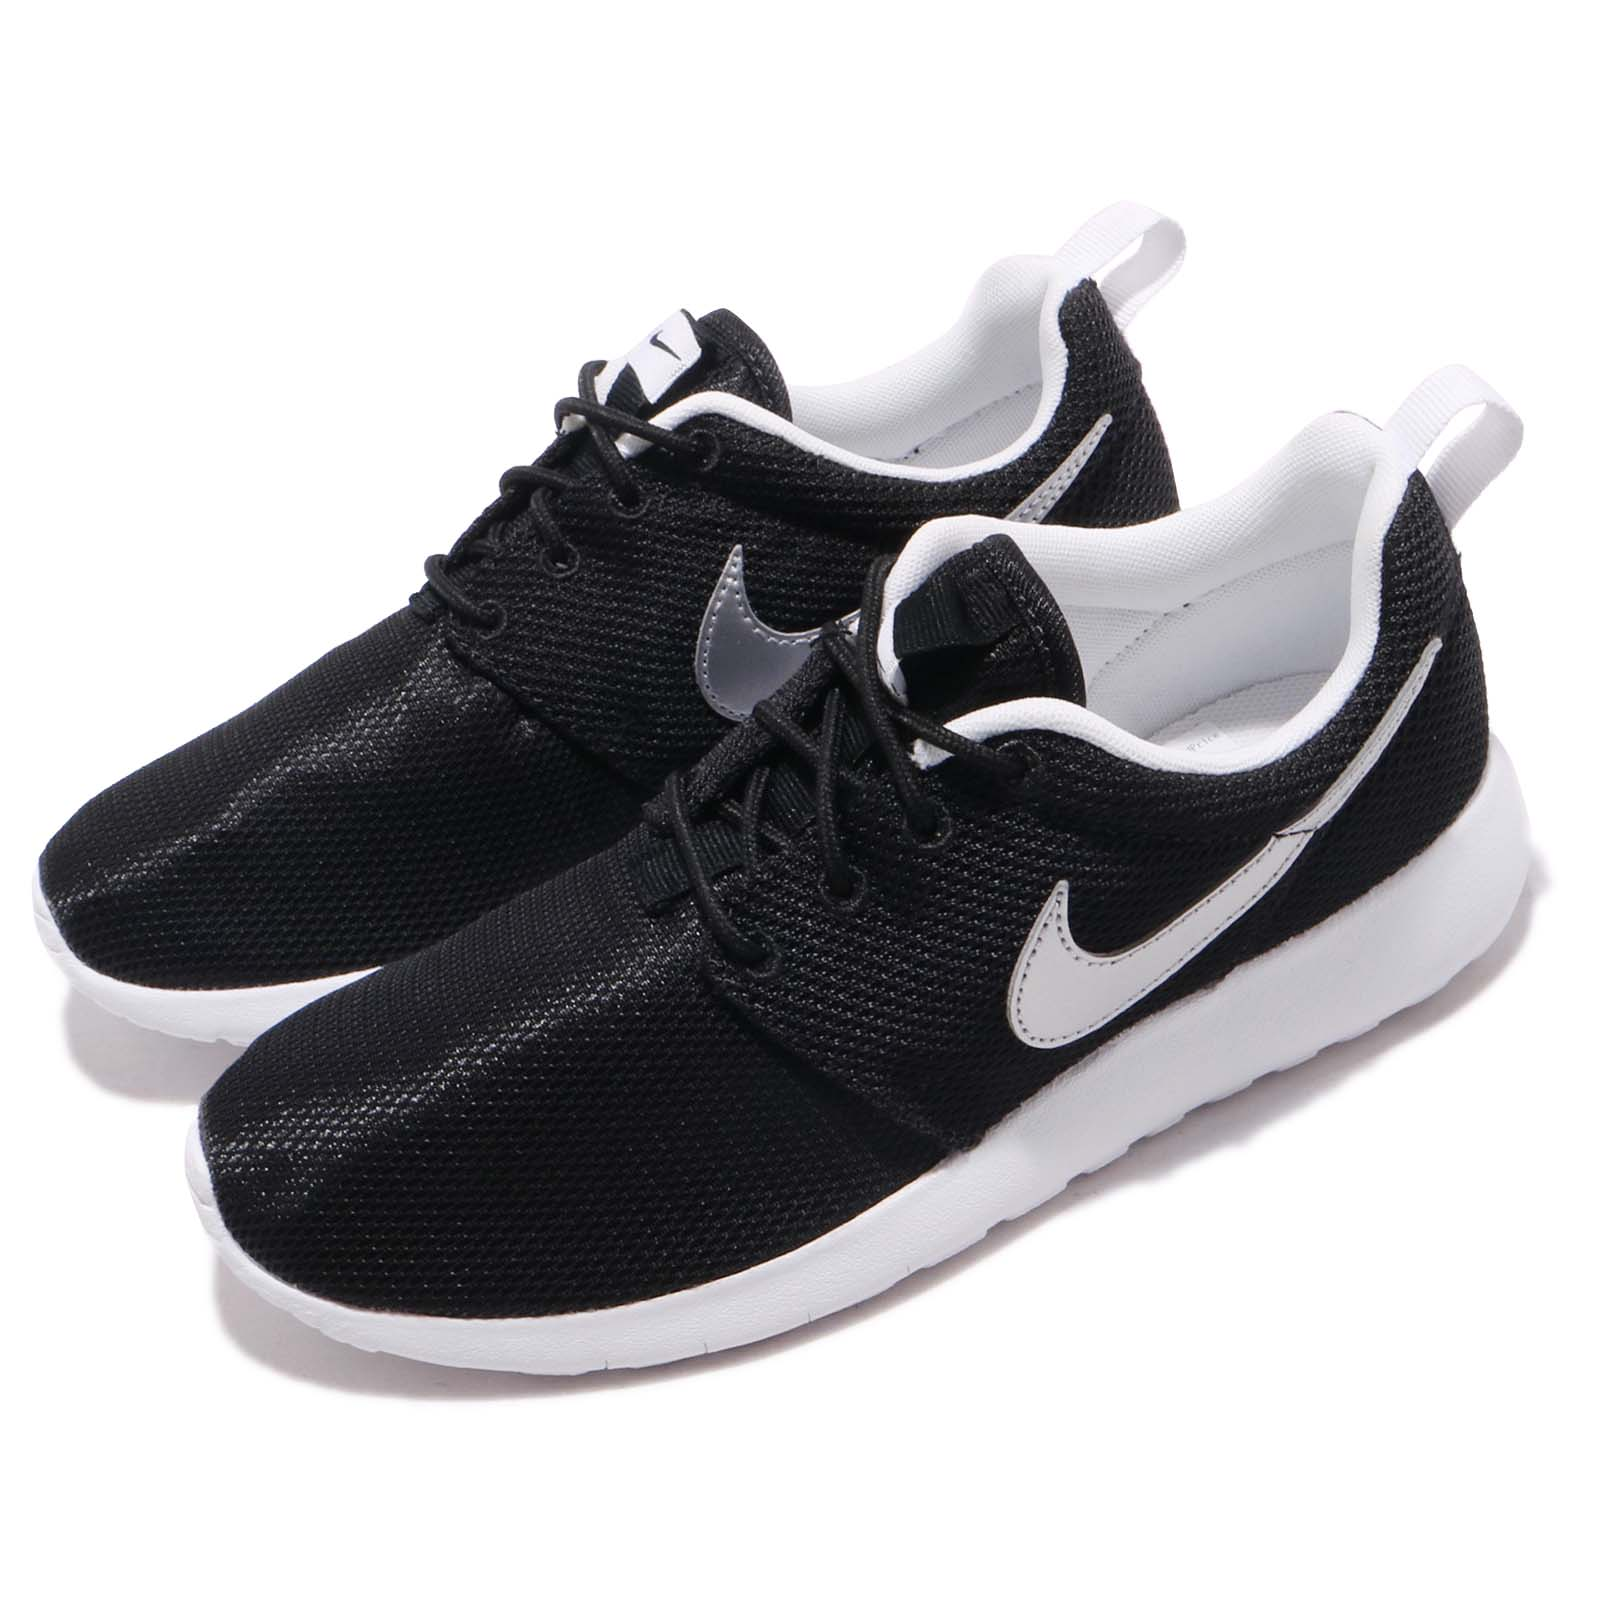 慢跑鞋 Nike Roshe Run One 女鞋 599728-021